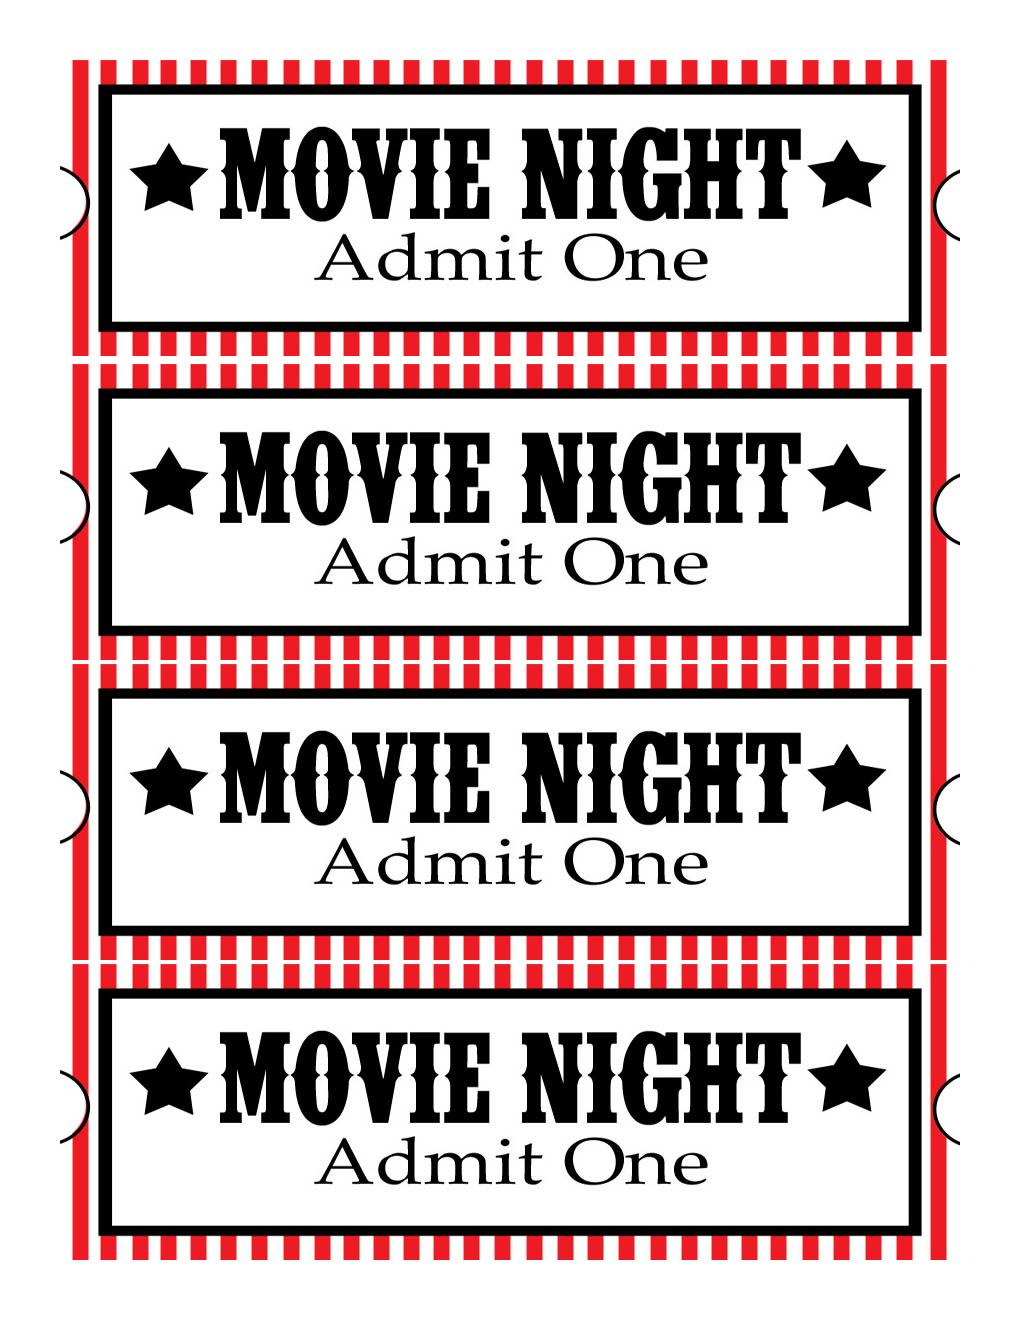 Attractive Free Printable Movie Night Ticket I Sweet Daisy Designs Inside Print Tickets Free Template